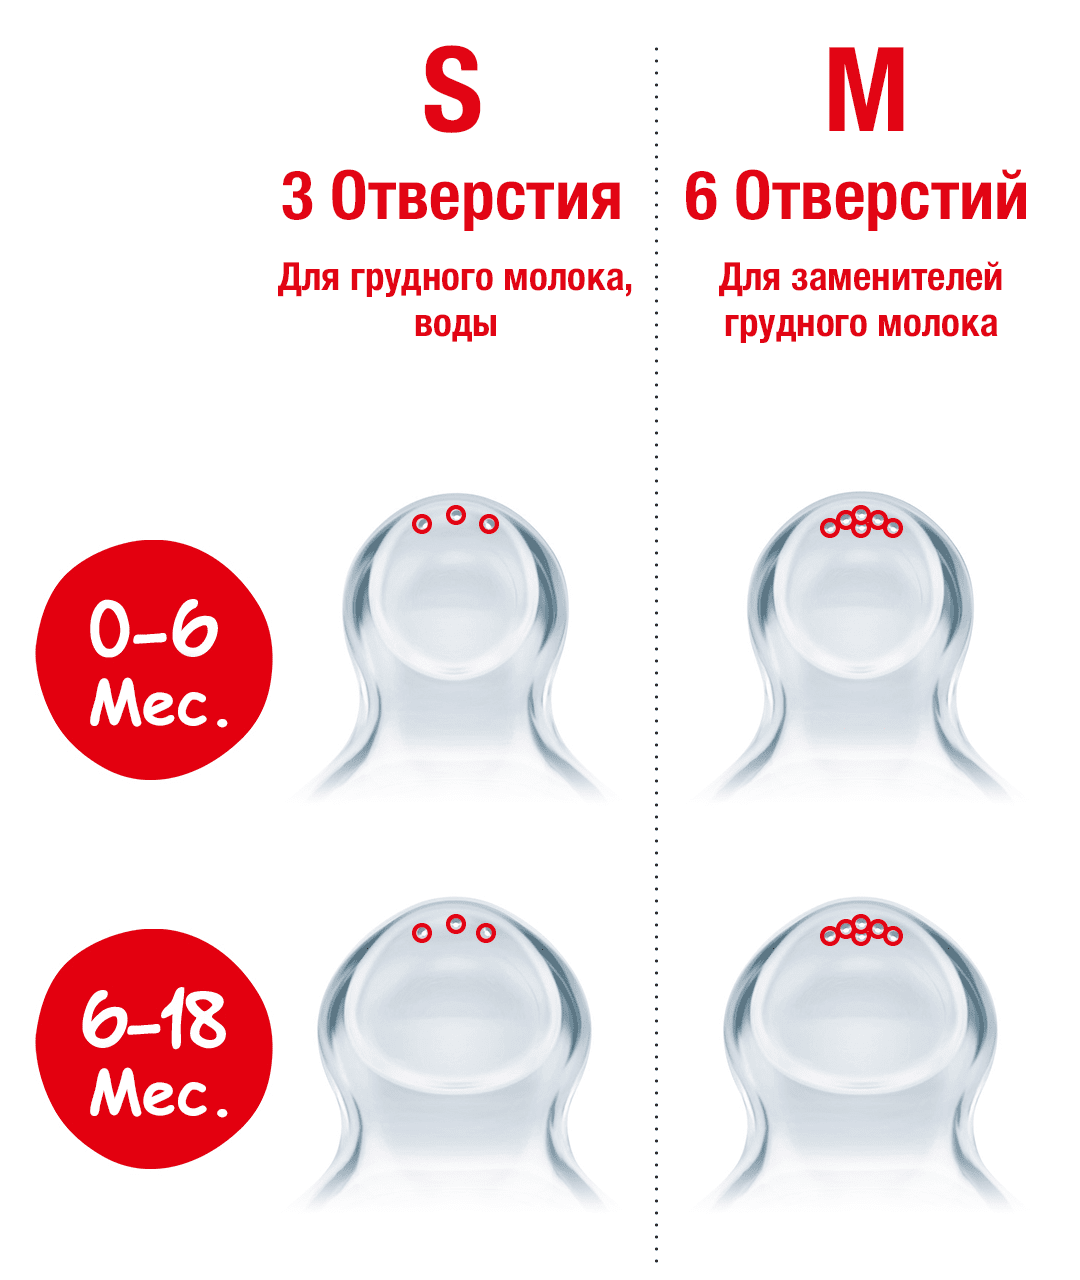 http://f.igtrend.kz/products/001/049/10743695_6.png